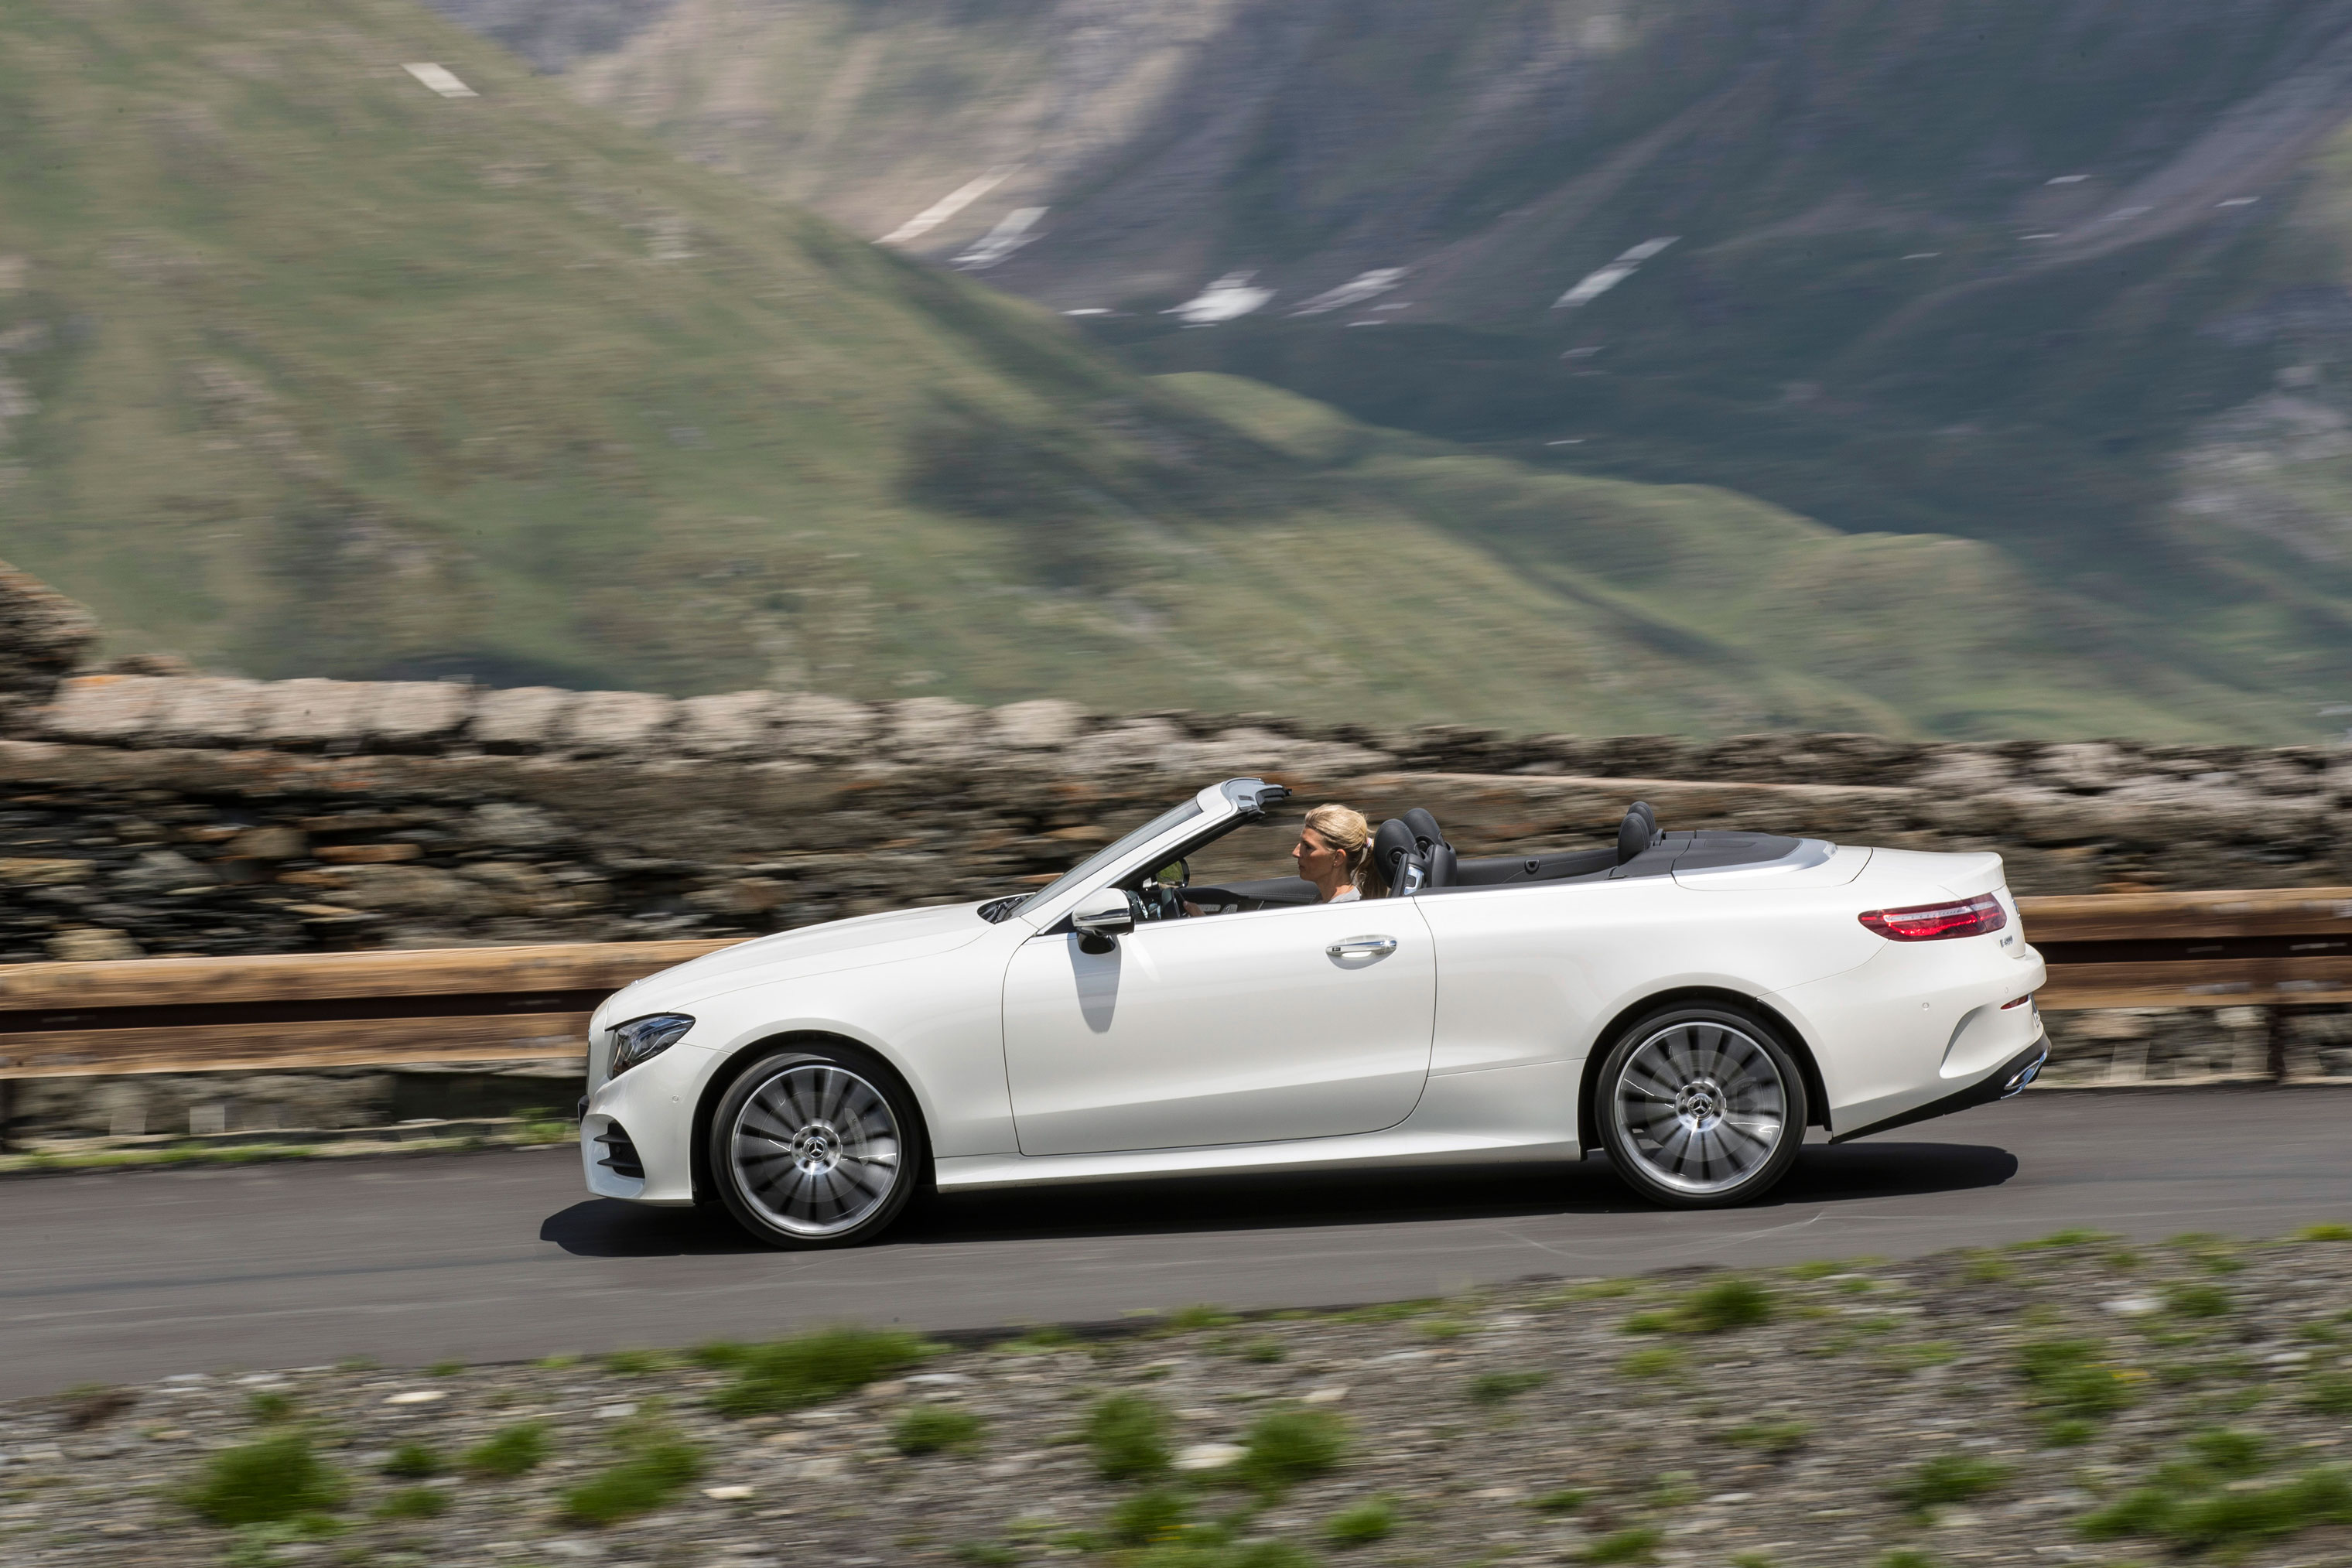 Mercedes Benz E400 4matic Cabriolet Review The Epitome Of Luxury And Class Evo